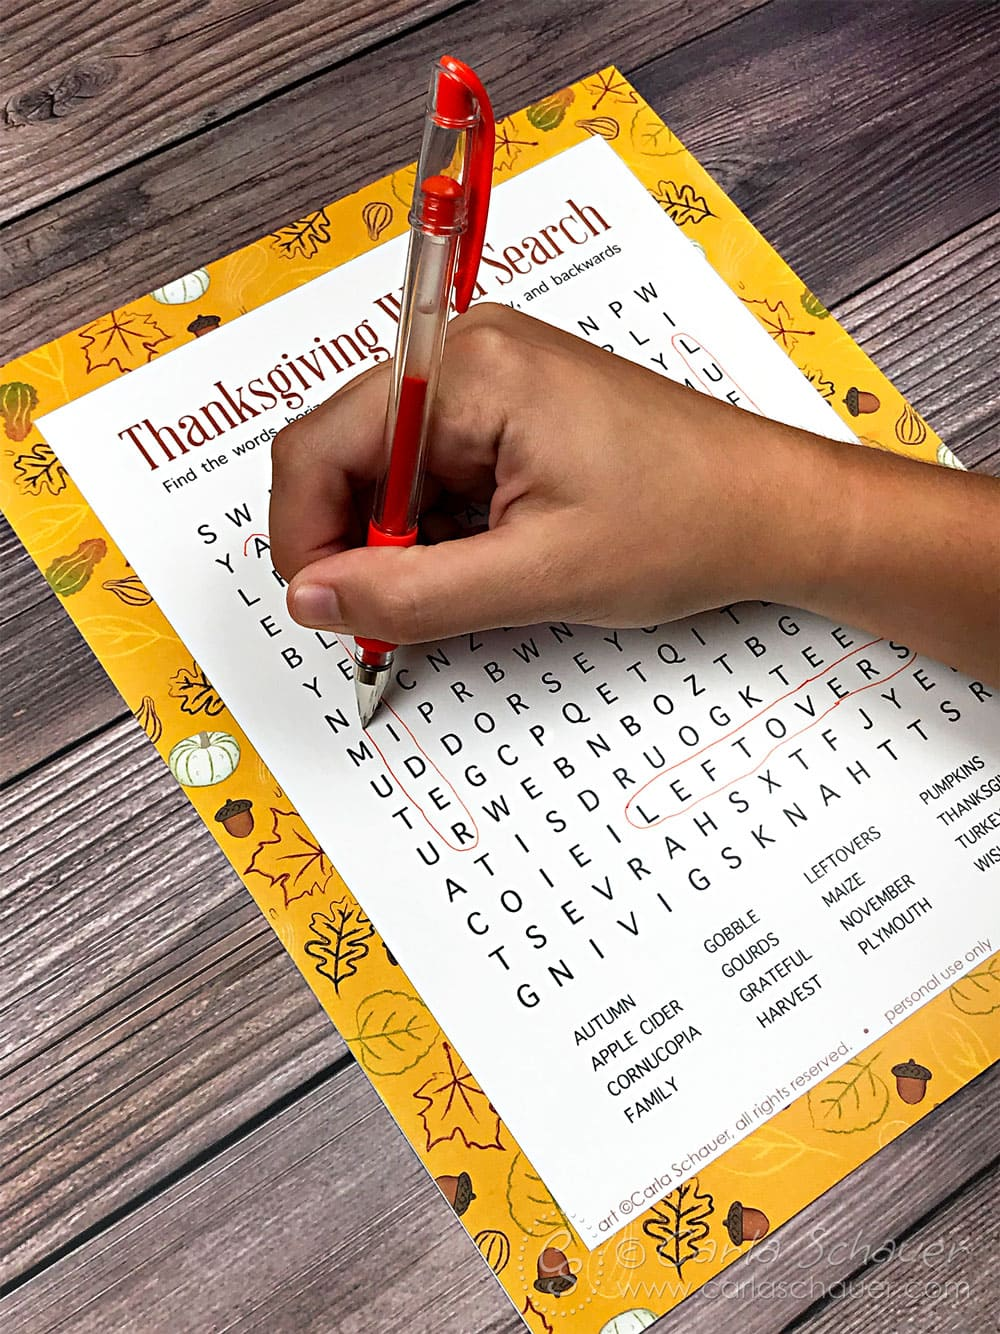 Hand circling words on Thanksgiving word search printable puzzle, on wood table.